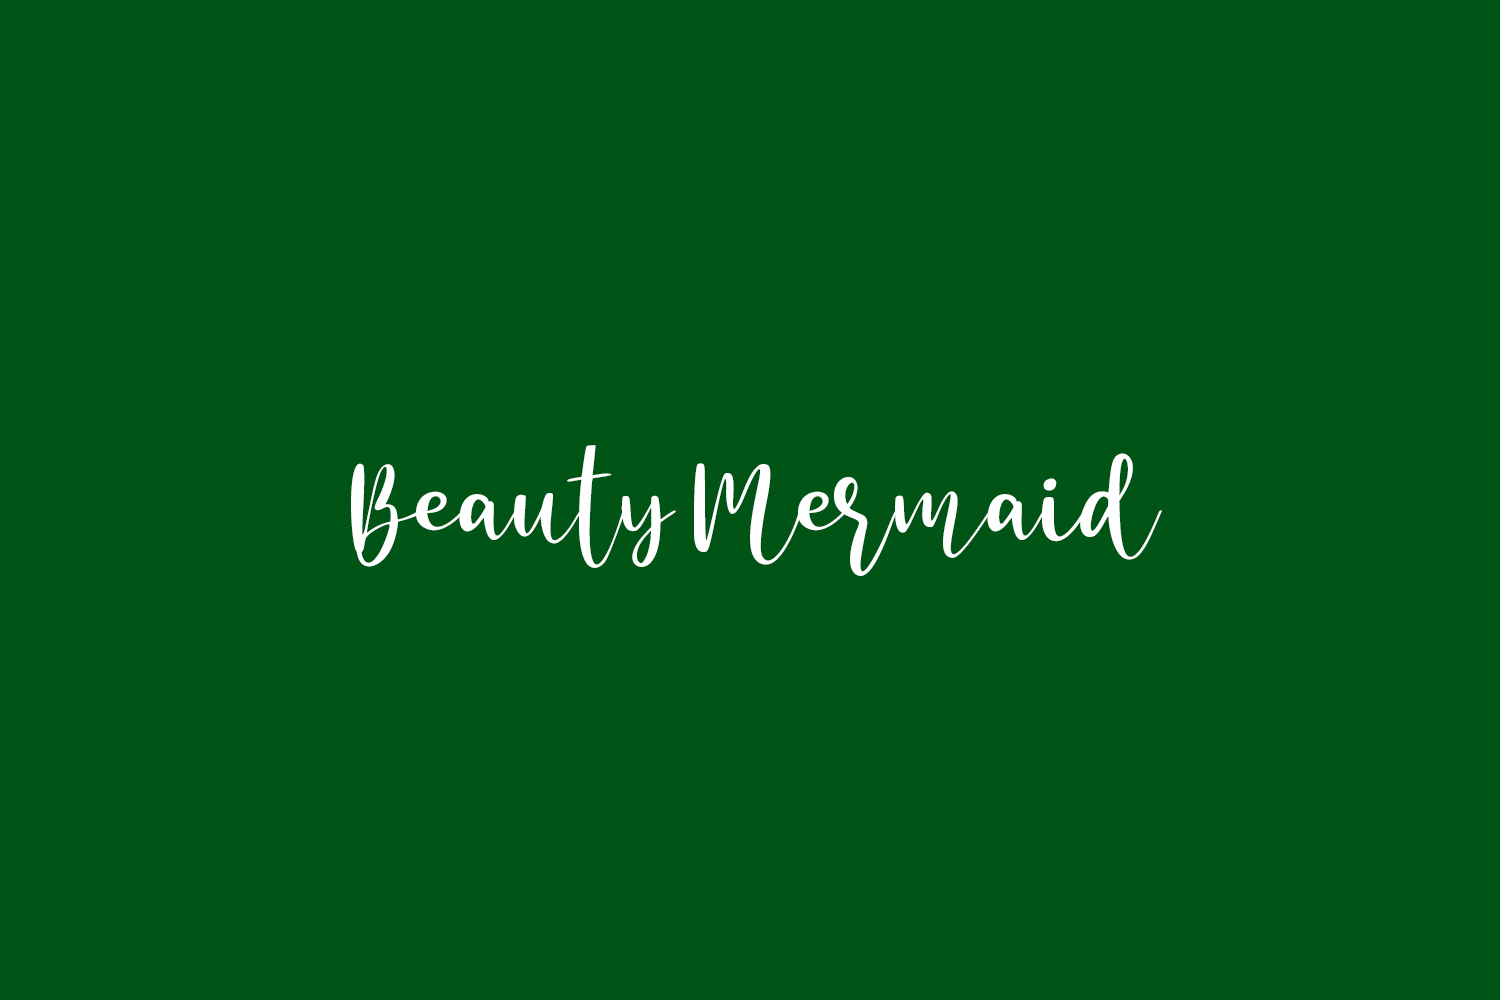 Beauty Mermaid Free Font